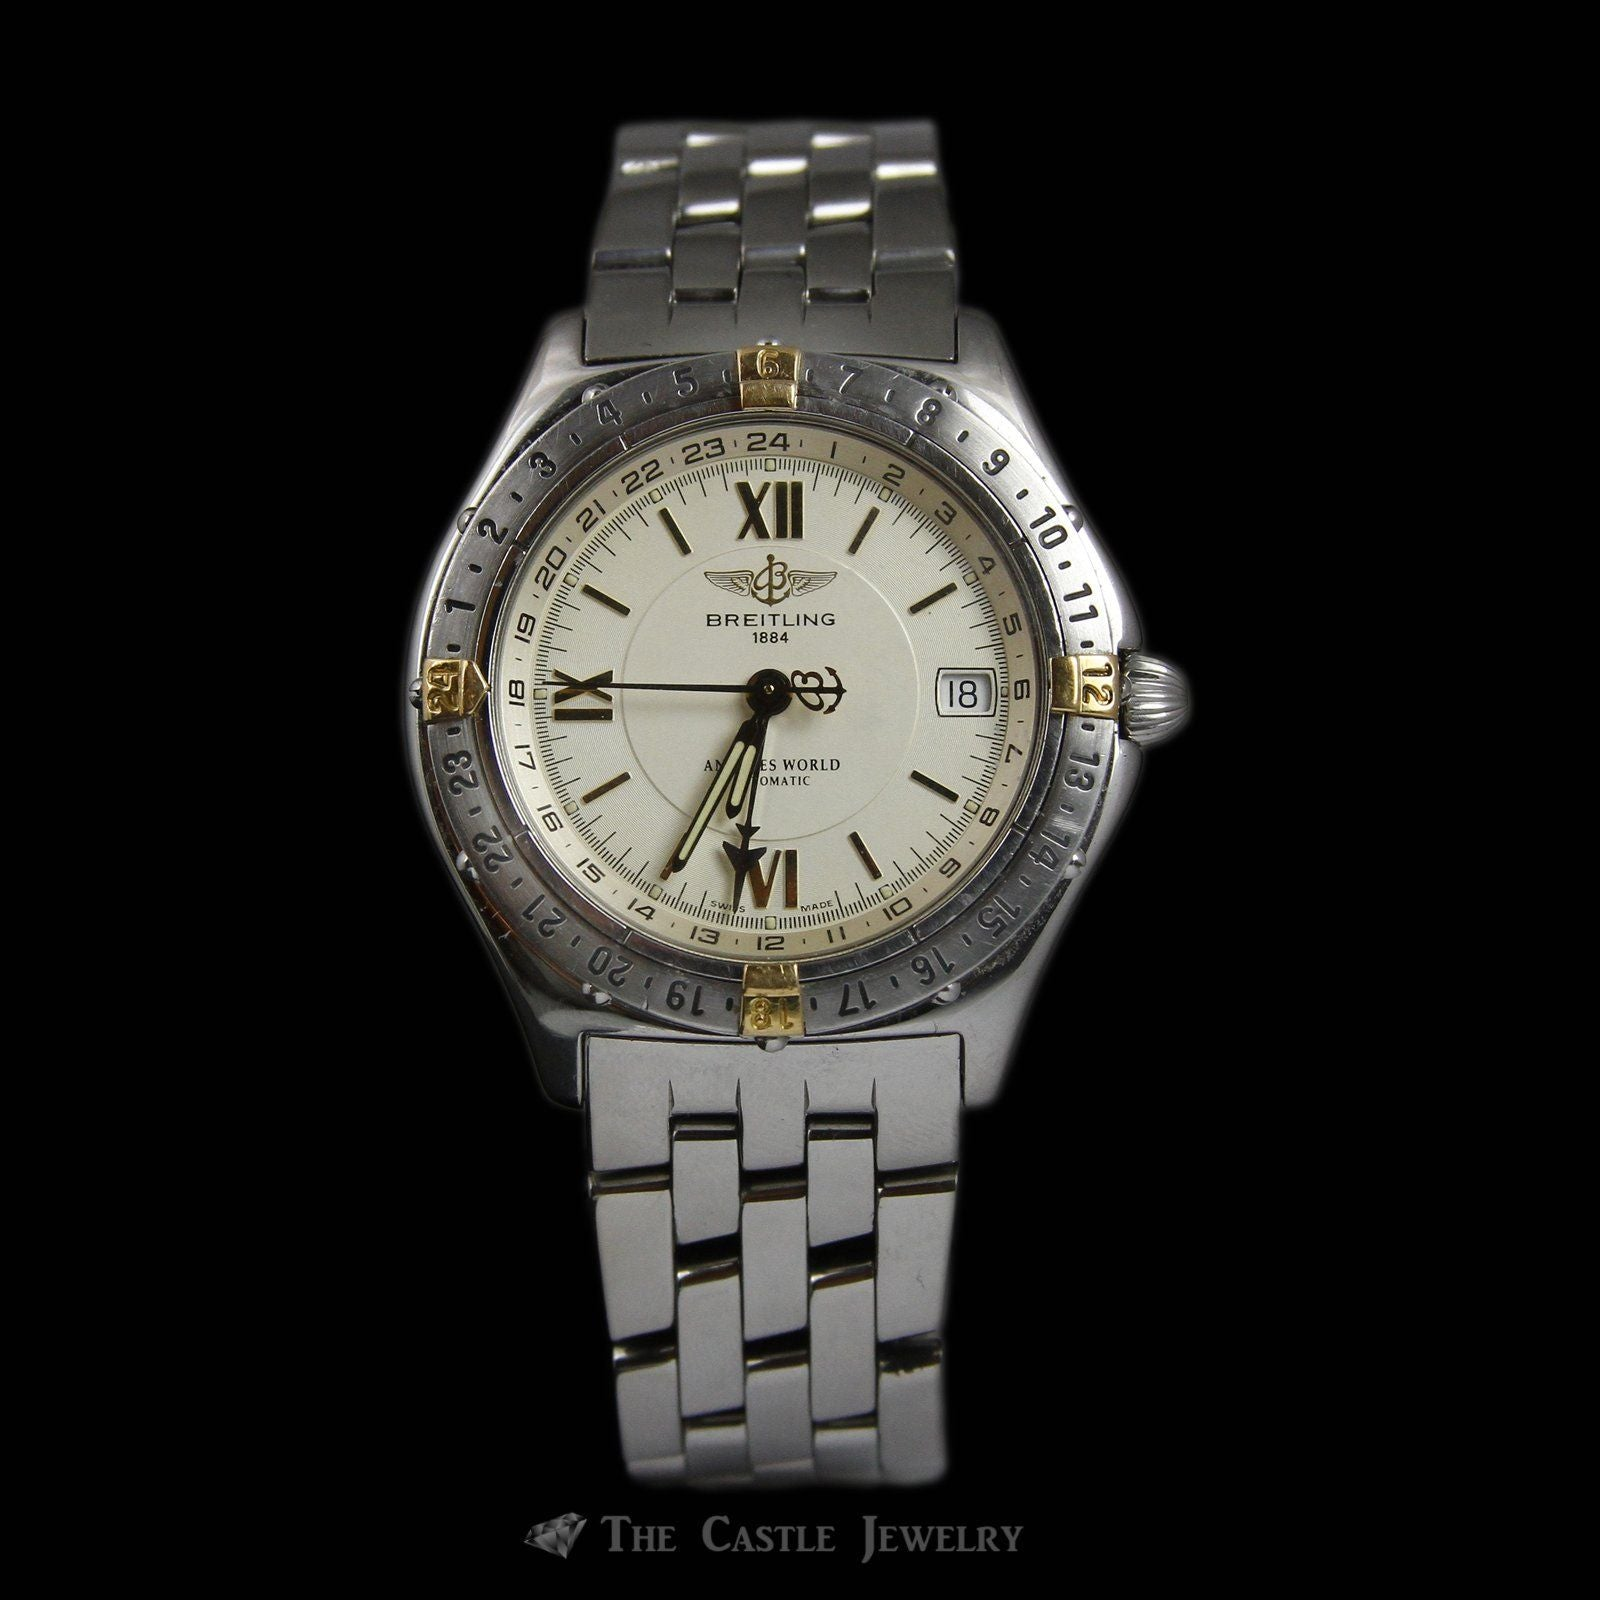 Rare Stainless Steel & 18K Breitling Antares World Watch w/ Gold Dial & Rotating Bezel